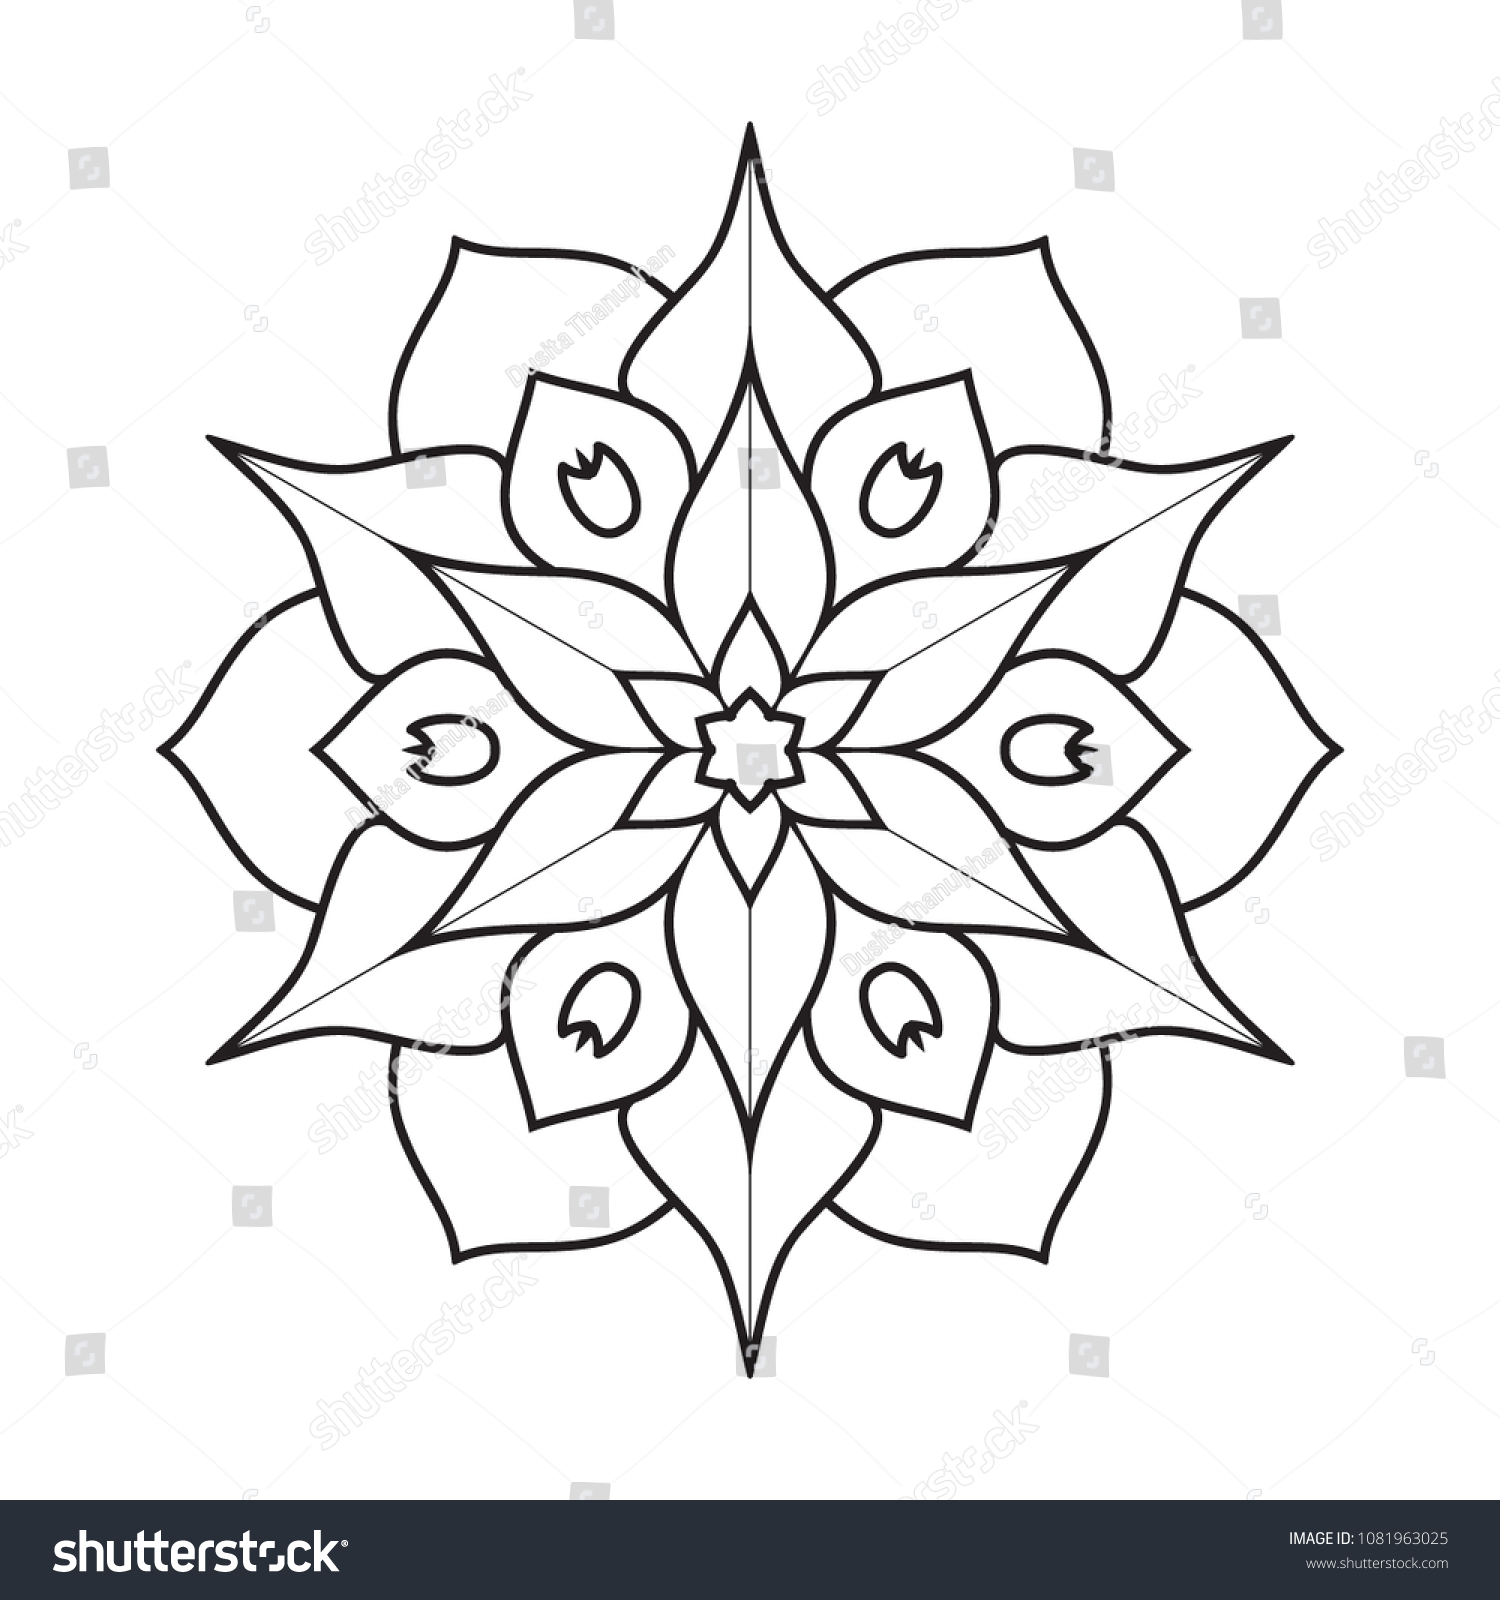 Easy Simple Mandalas Coloring Book Pages Stock Illustration ...